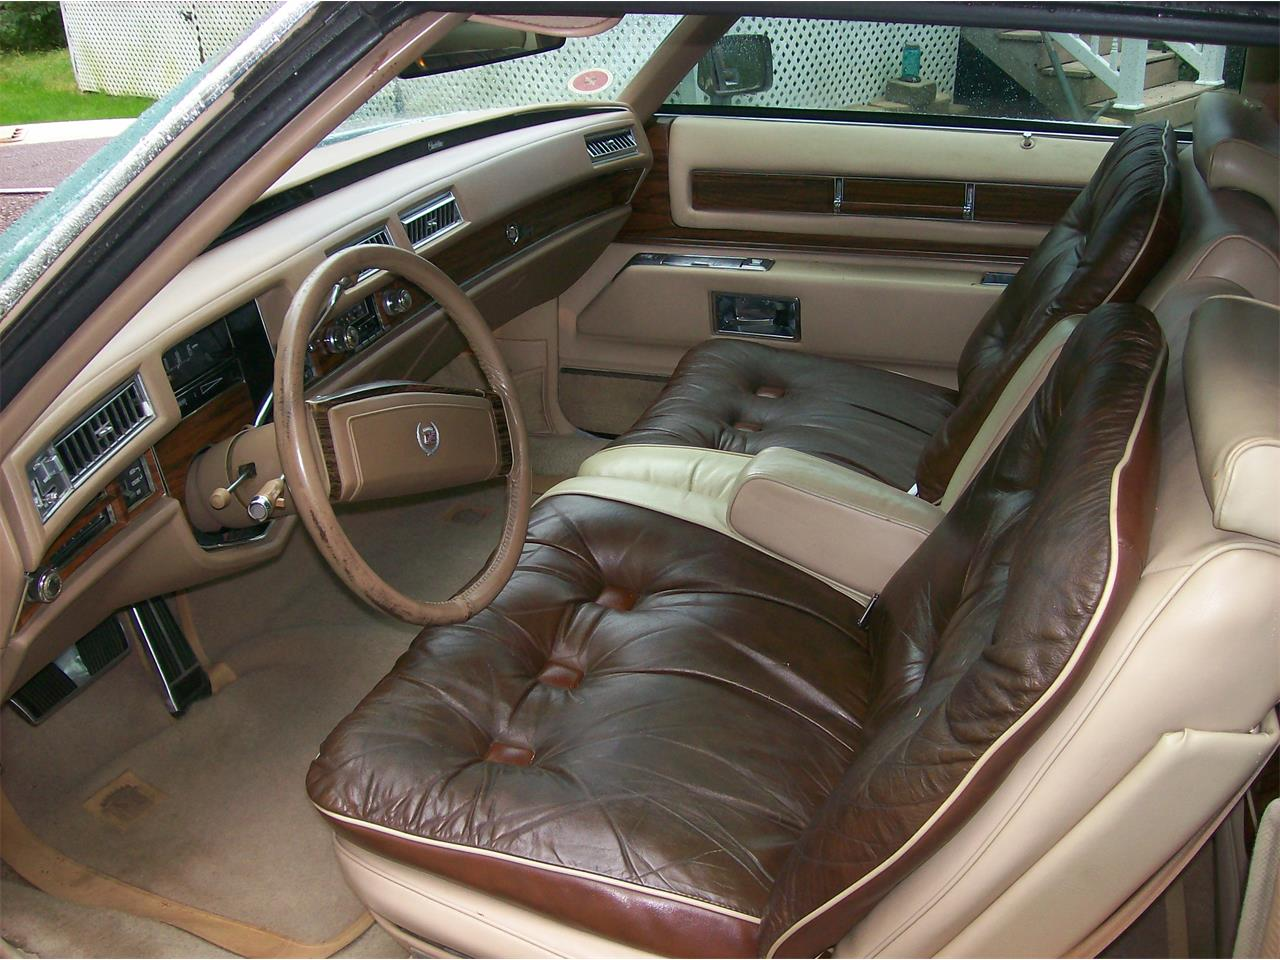 Large Picture of '78 Eldorado Biarritz located in Connecticut - $8,000.00 Offered by a Private Seller - FQEE